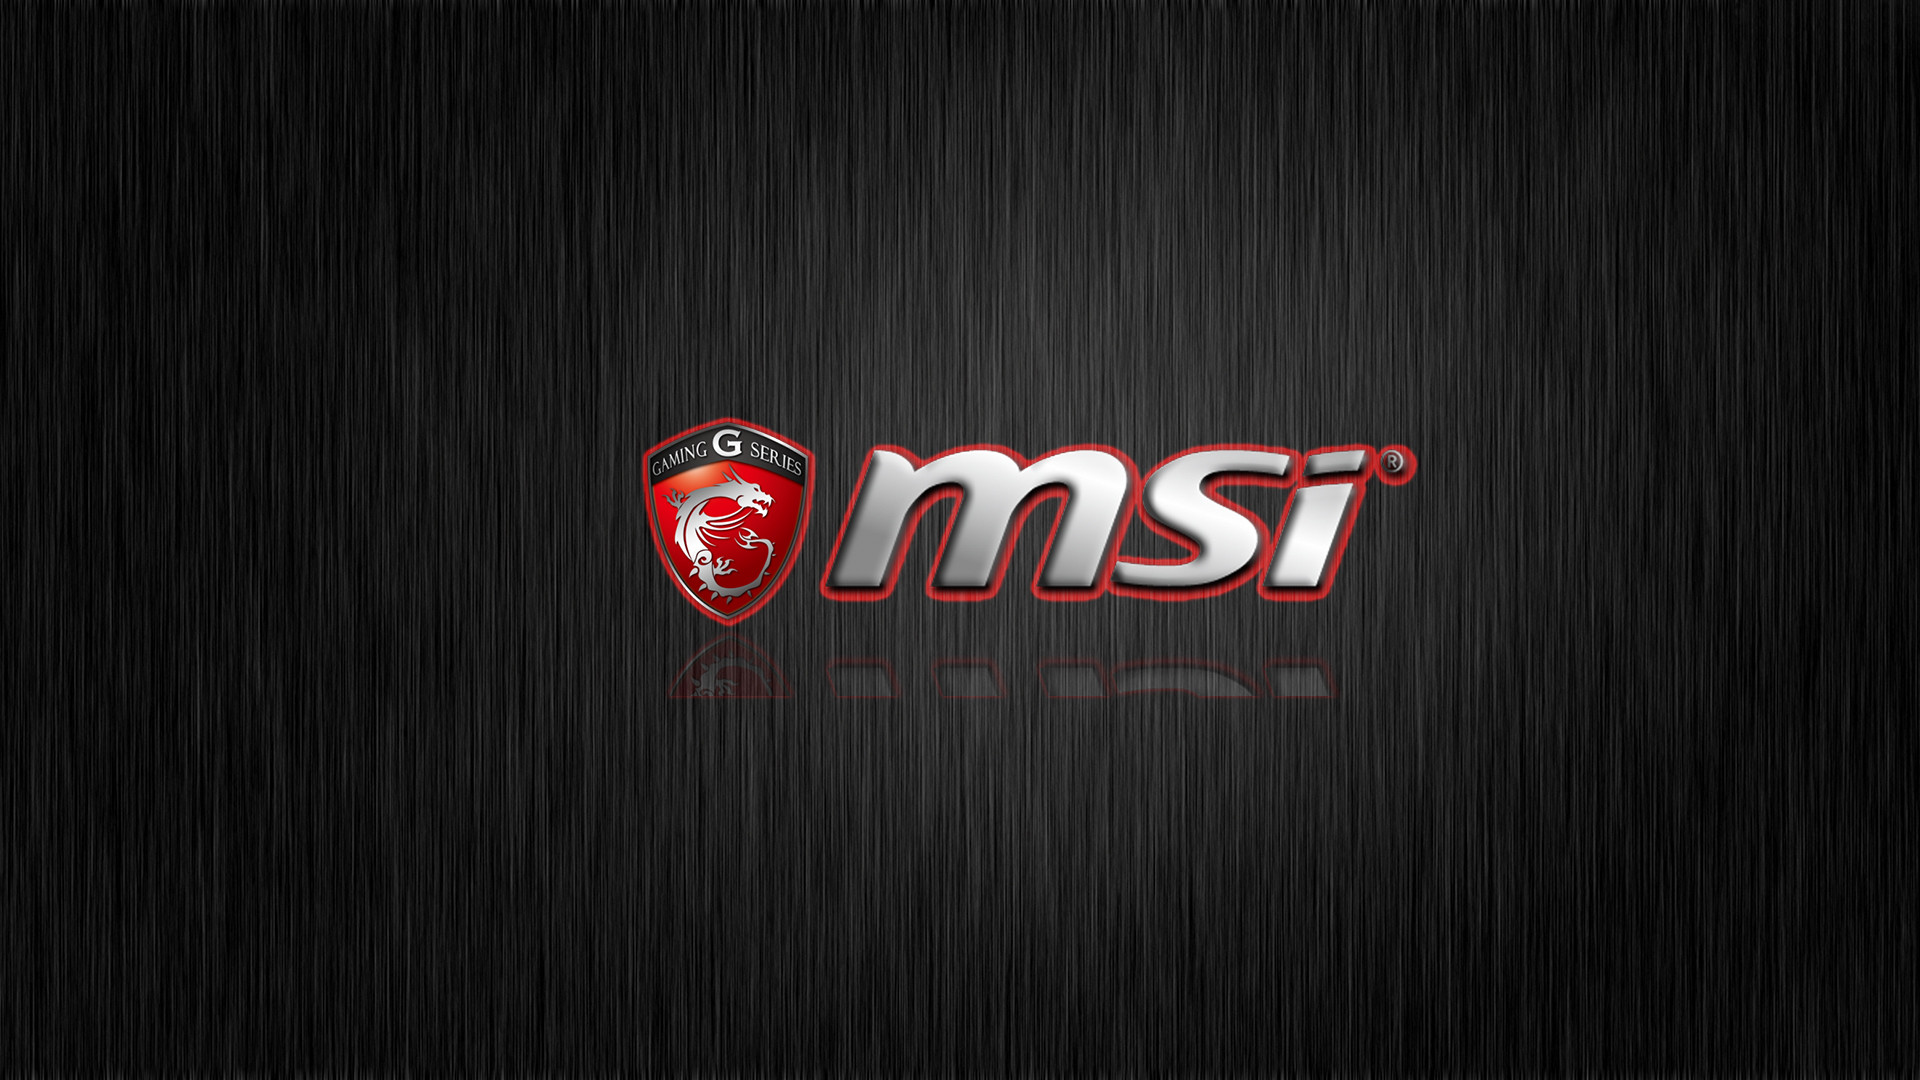 10 New Msi Gaming Series Wallpaper Full Hd 1920 1080 For: Die 90+ Besten MSI Wallpapers